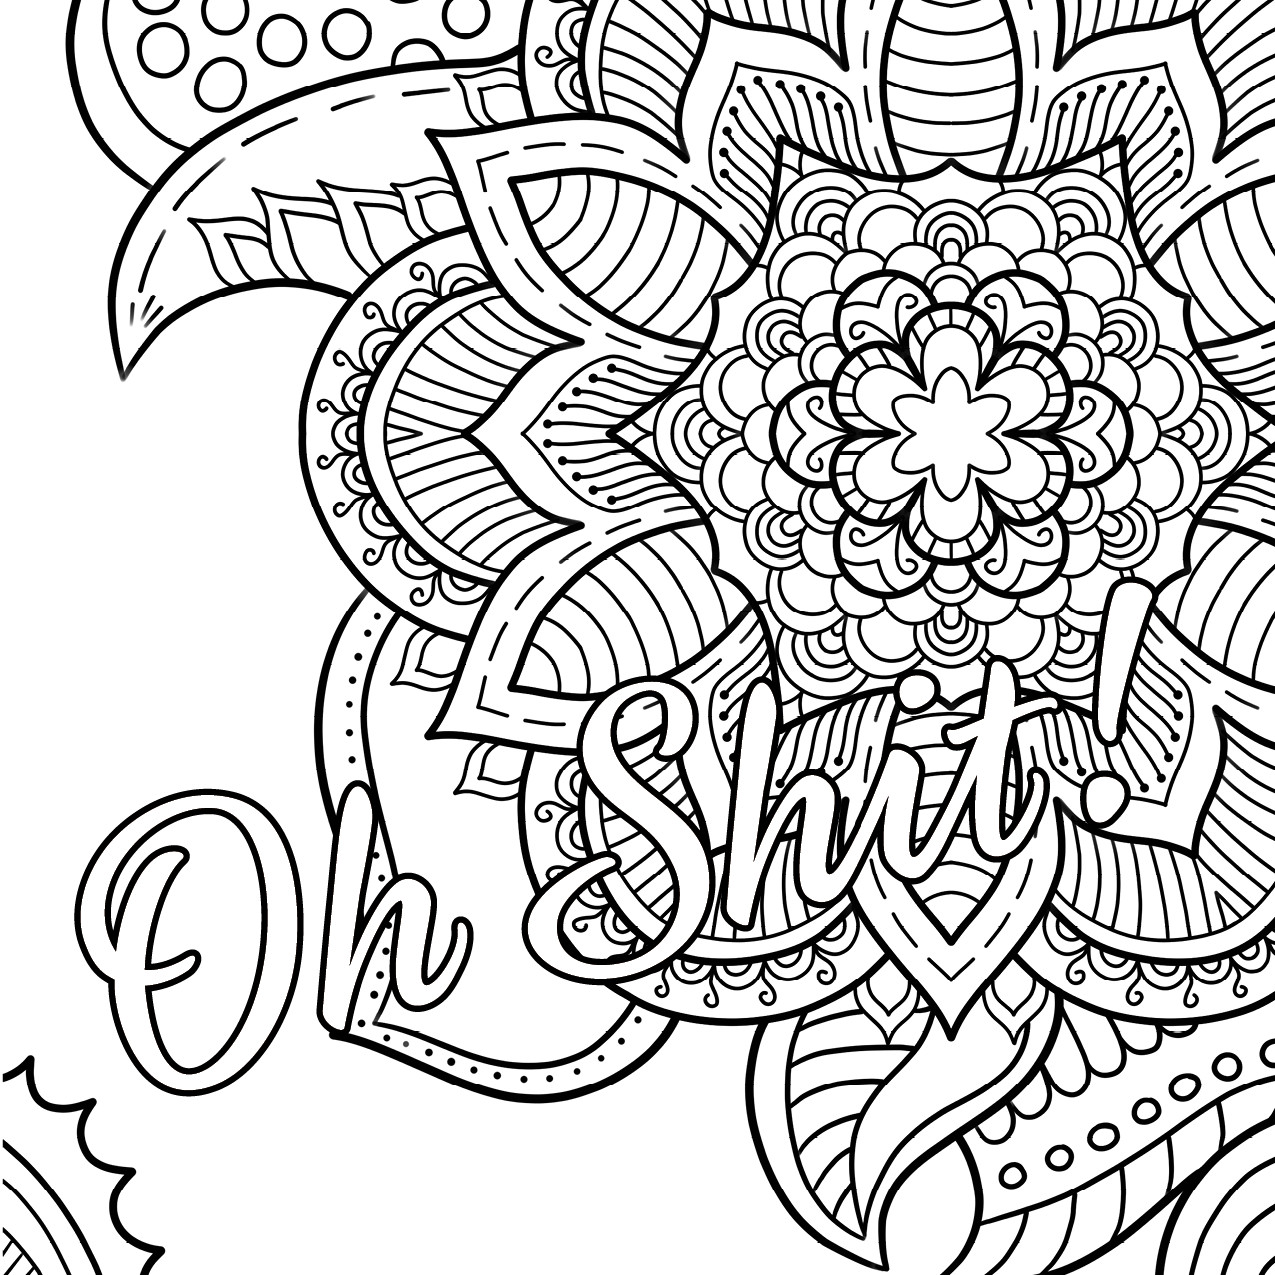 Adult Swear Coloring Pages  Oh Shit Free Coloring Page Swear Word Coloring Book